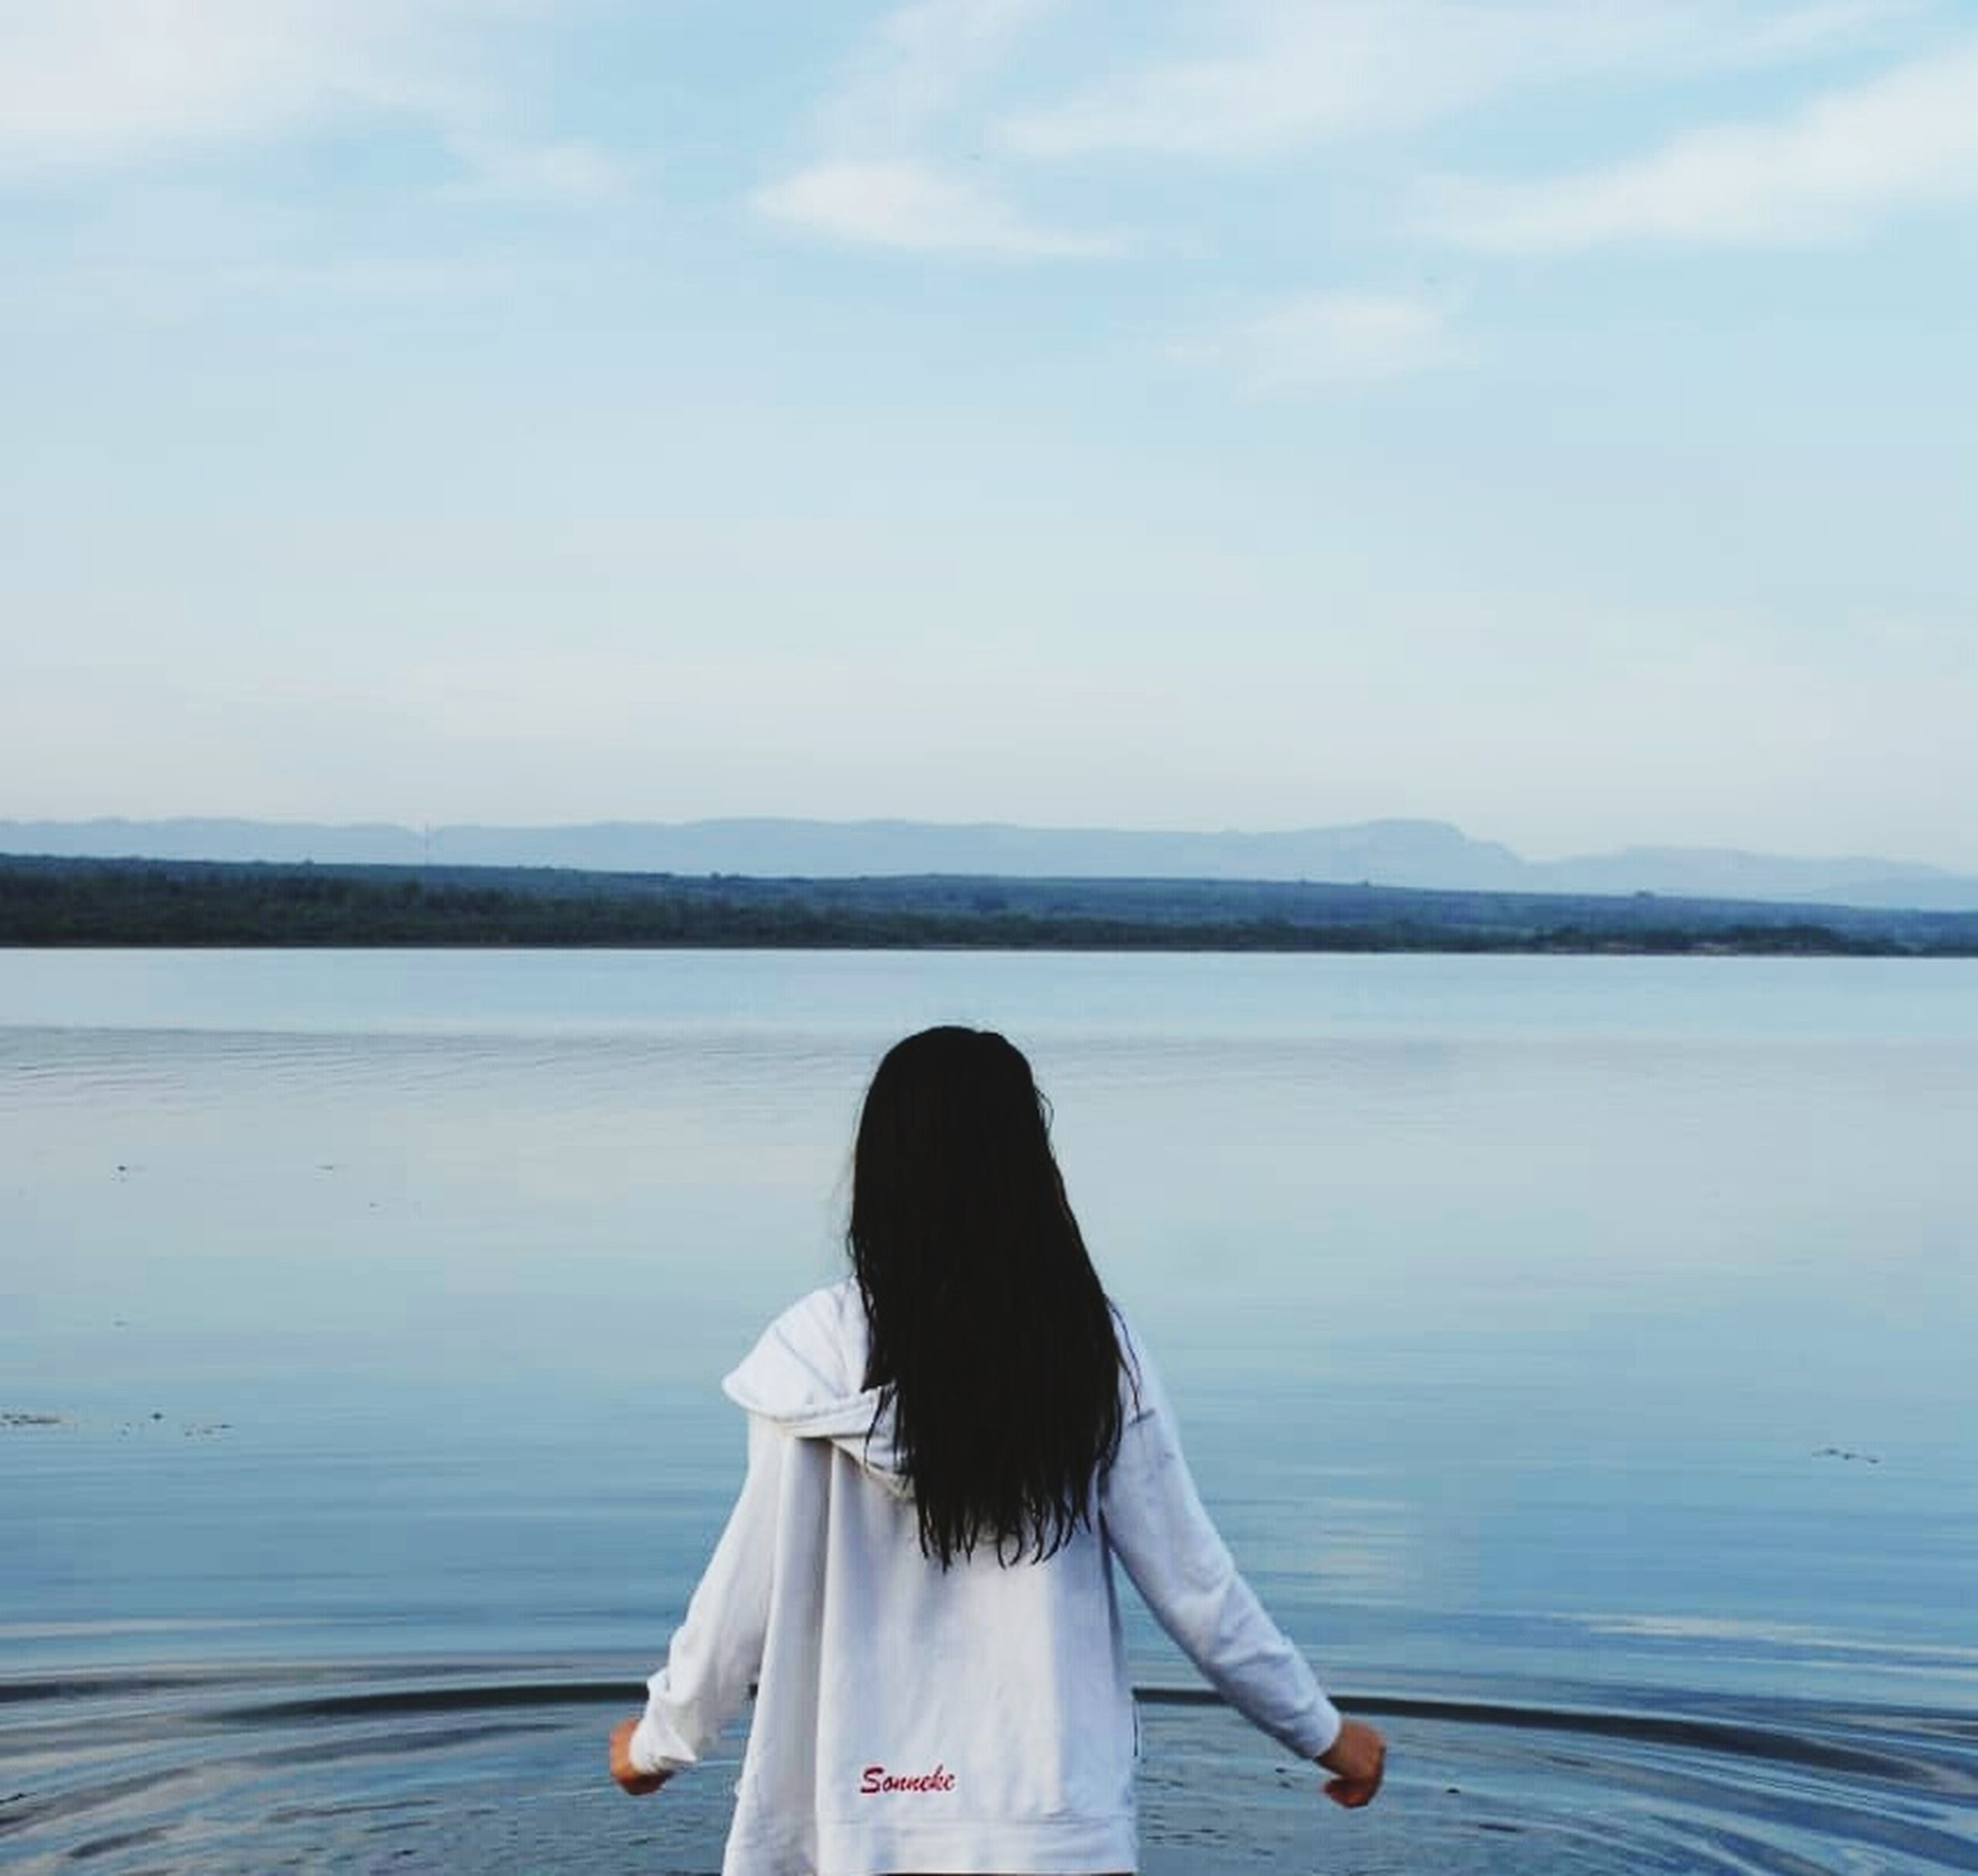 rear view, water, one person, real people, lifestyles, leisure activity, women, sky, beauty in nature, scenics - nature, adult, tranquil scene, day, hairstyle, standing, hair, long hair, nature, outdoors, looking at view